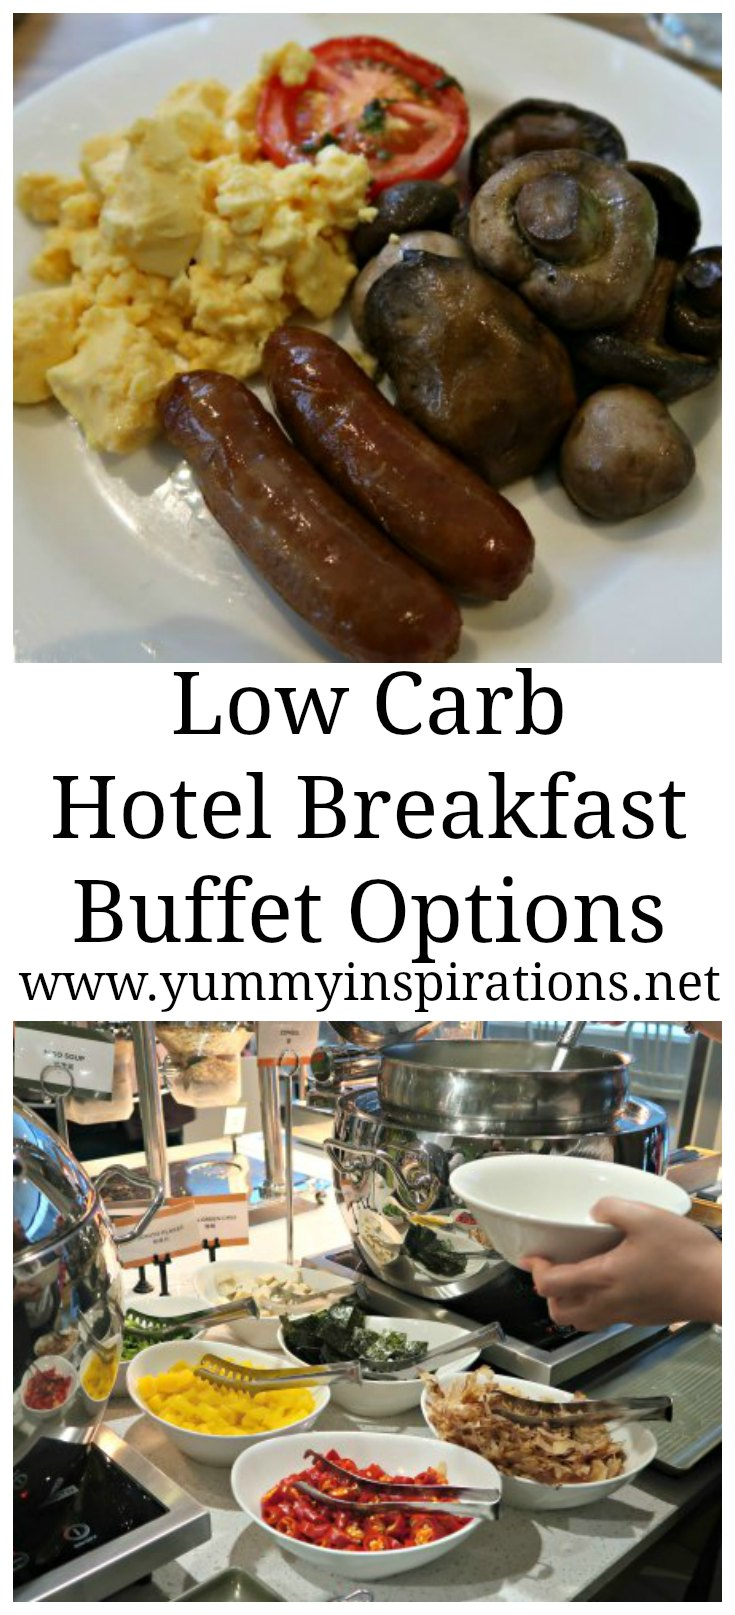 Low Carb Hotel Breakfast Buffet Options - Keto Meals and Food Ideas for when you are faced with a breakfast buffet while traveling.